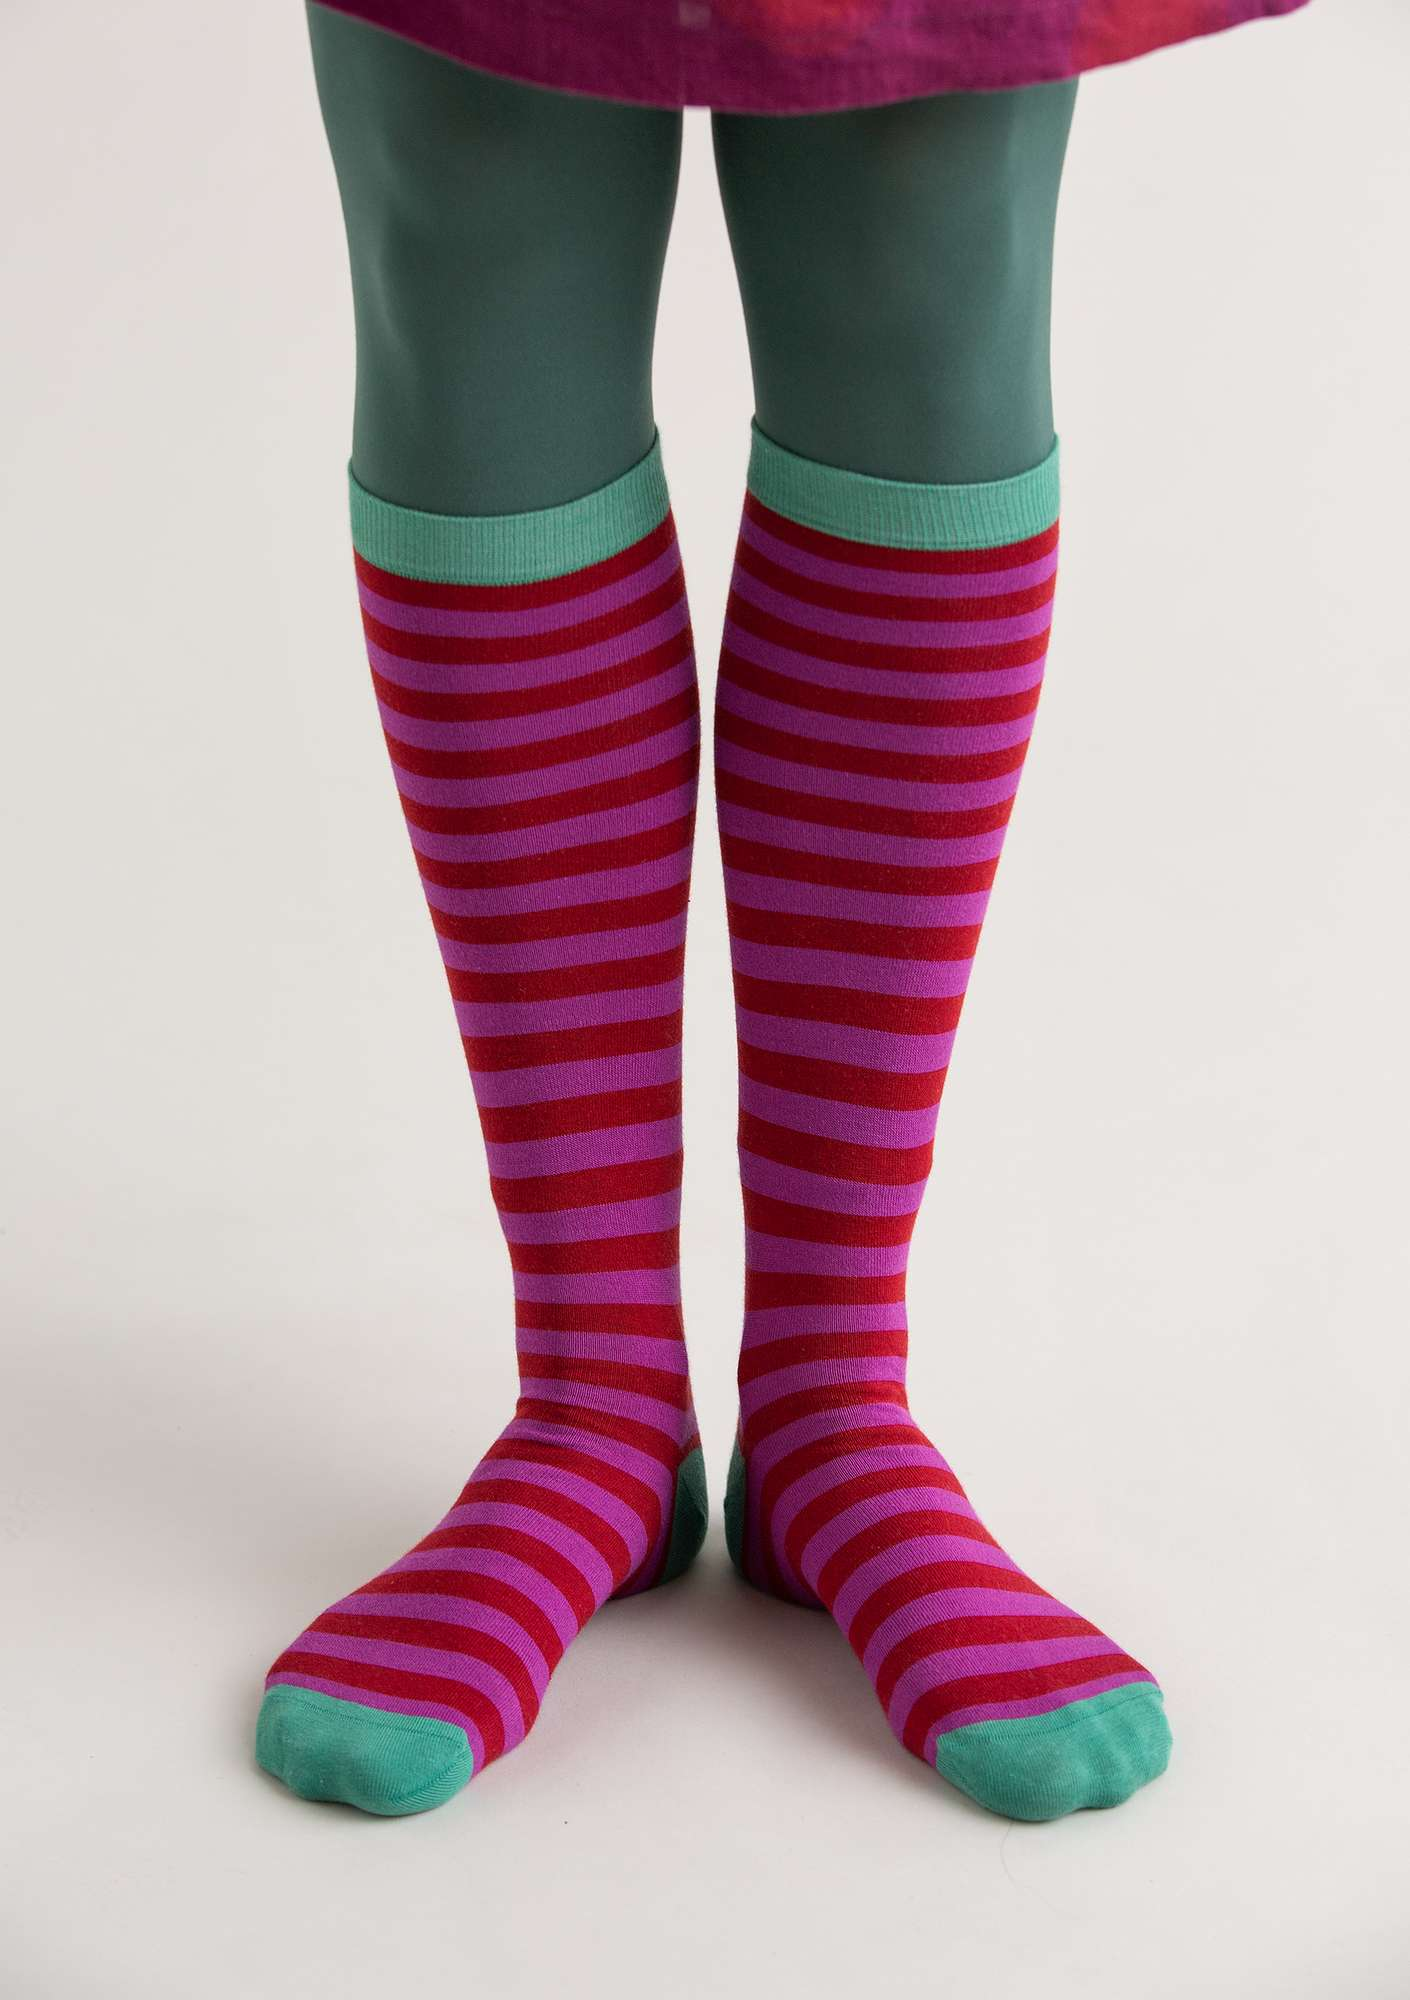 Striped knee-highs in organic cotton pomegranate/dark hydrangea